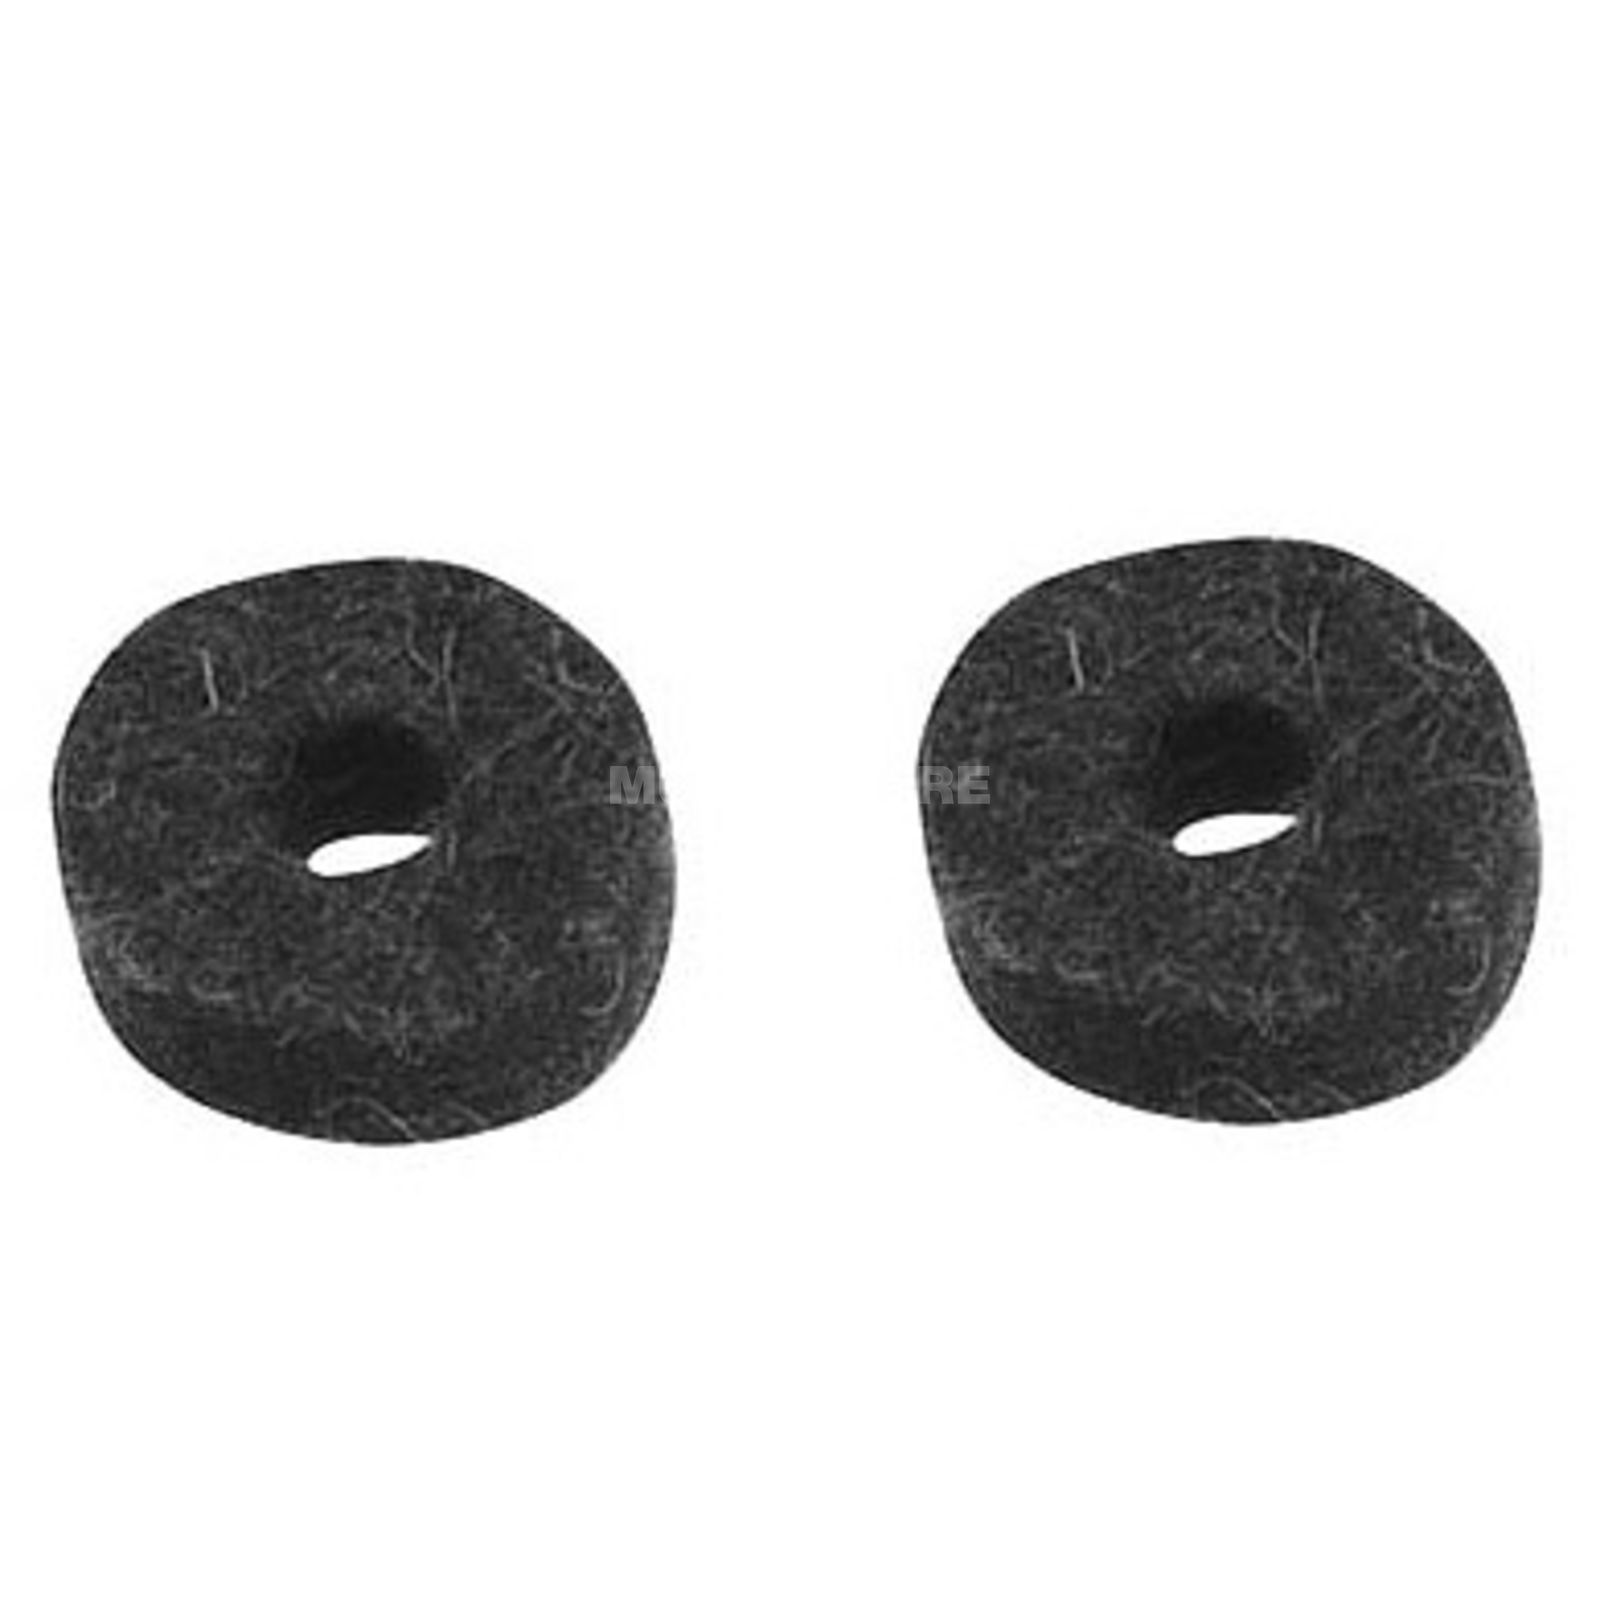 Pearl Cymbal felts, FL-95/2, for clutch CL-95 / 90, 2 pcs Produktbillede